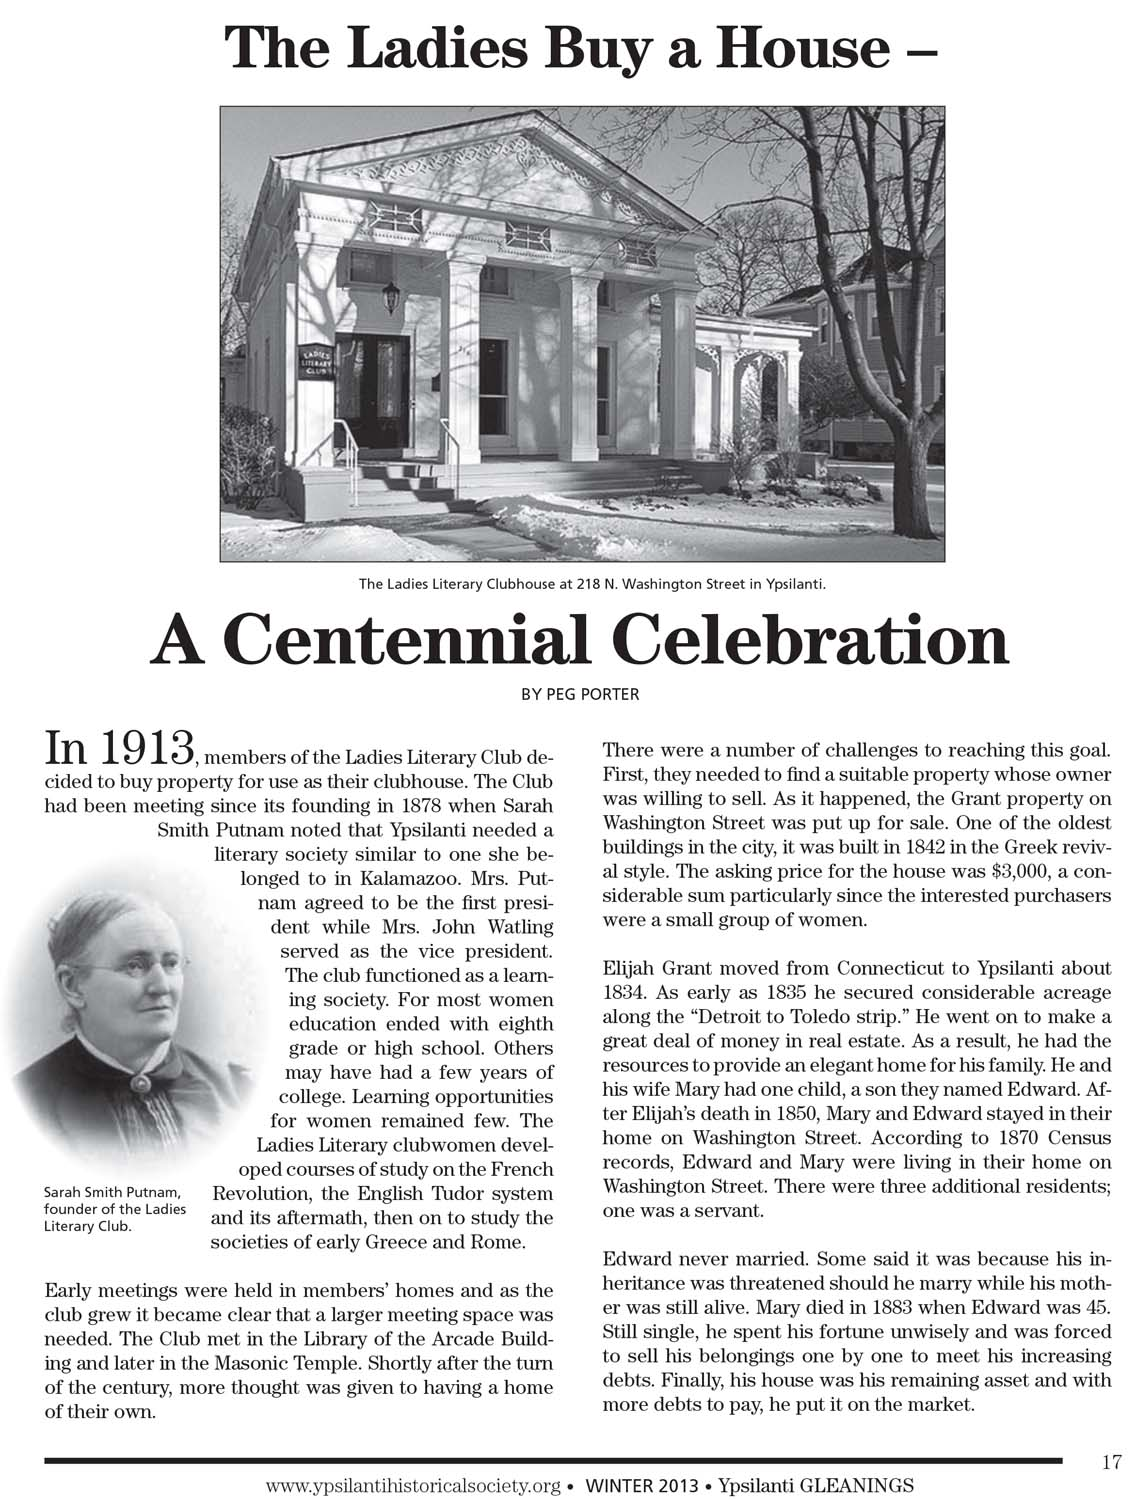 The Ladies Buy a House - A Centennial Celebration image